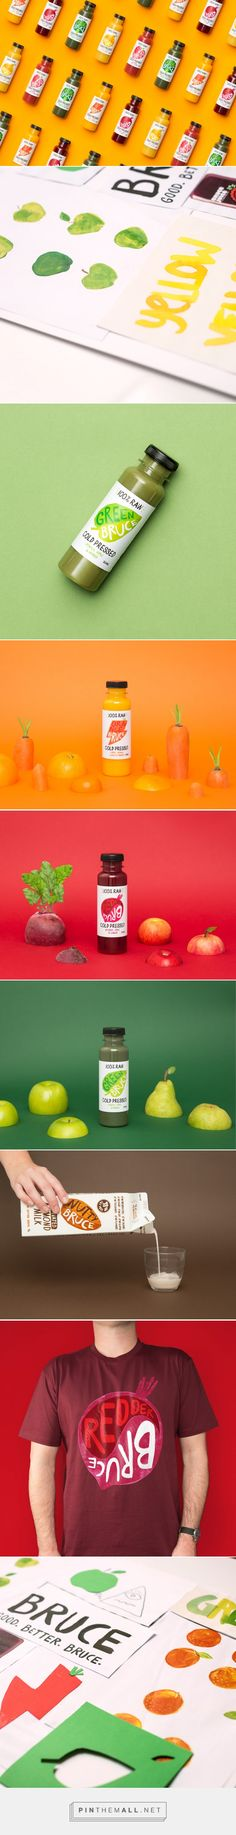 Bruce Juice Packaging designed by Marx Design​ - http://www.packagingoftheworld.com/2015/10/bruce-juice.html